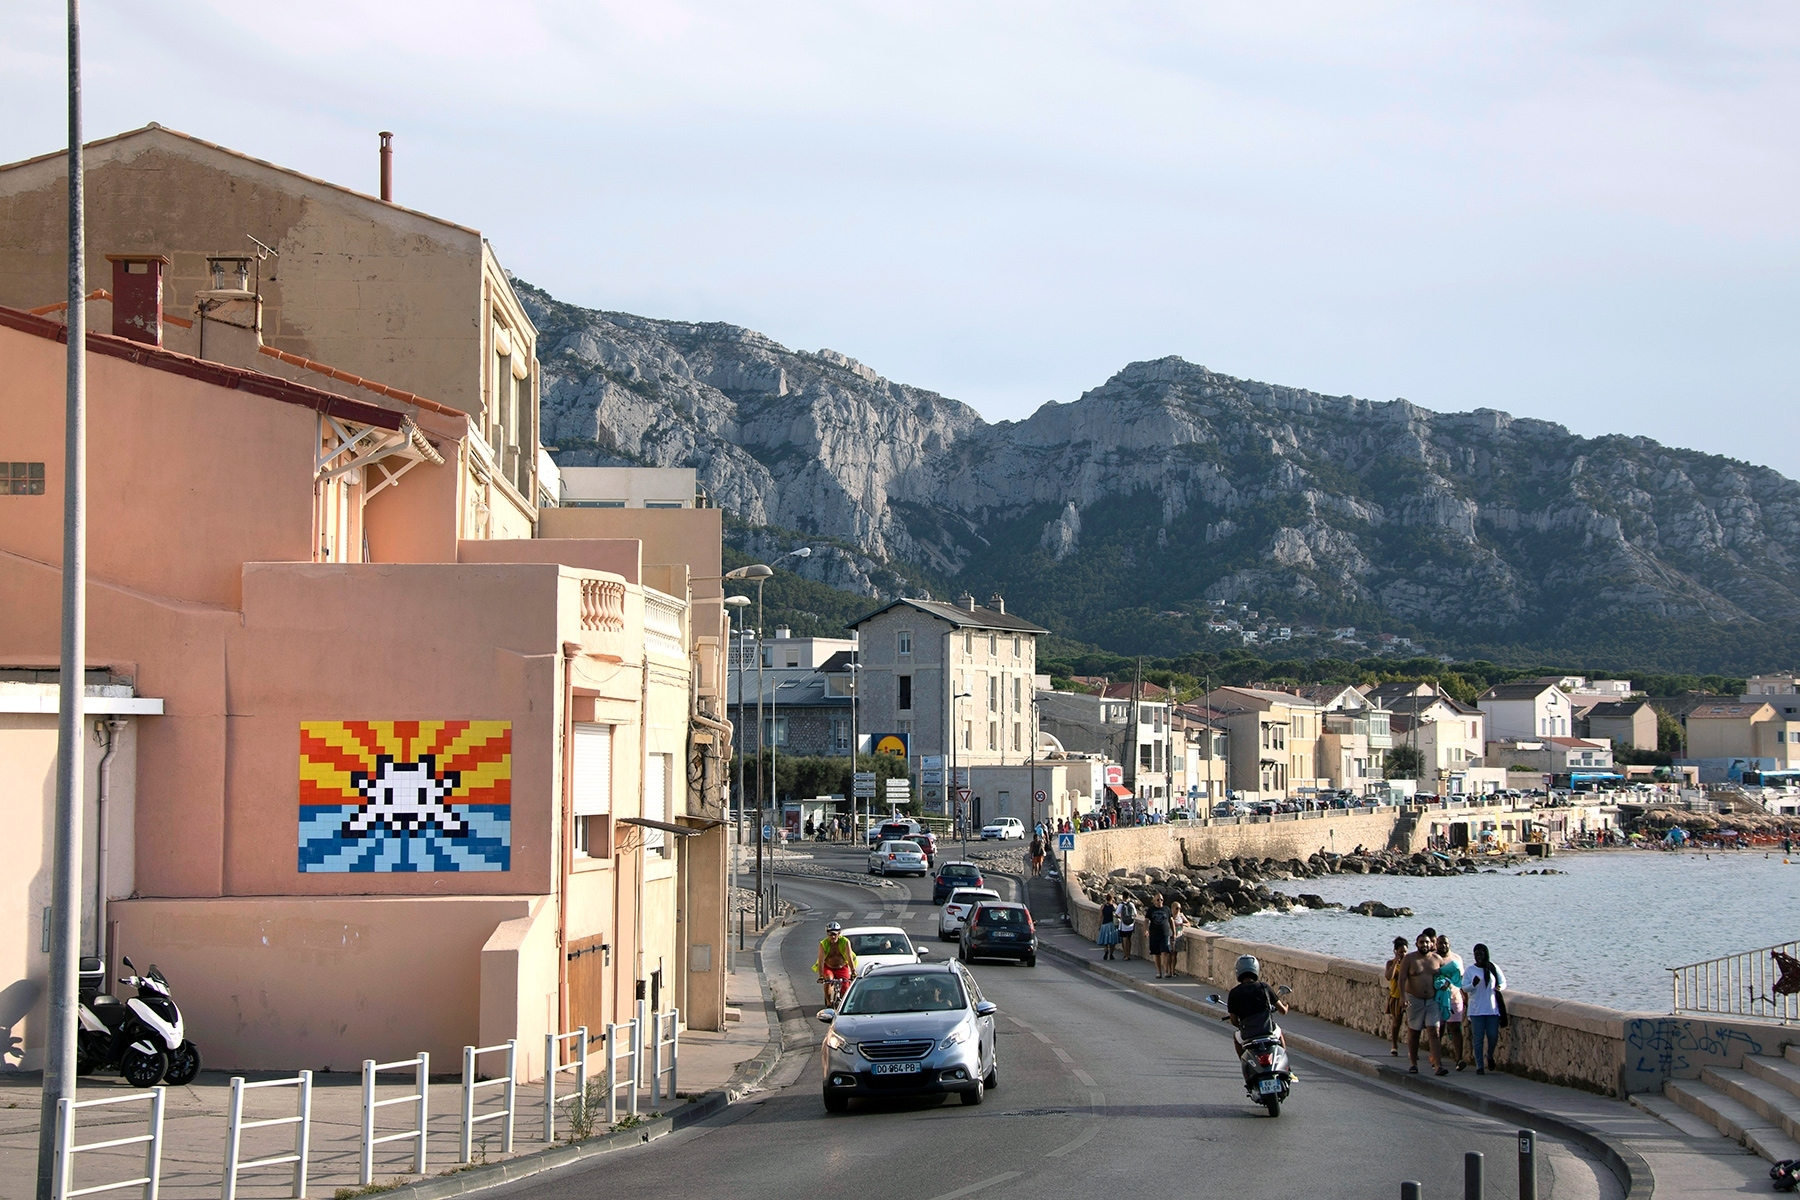 Street artist Invader secretly covered Marseille in mosaics this summer